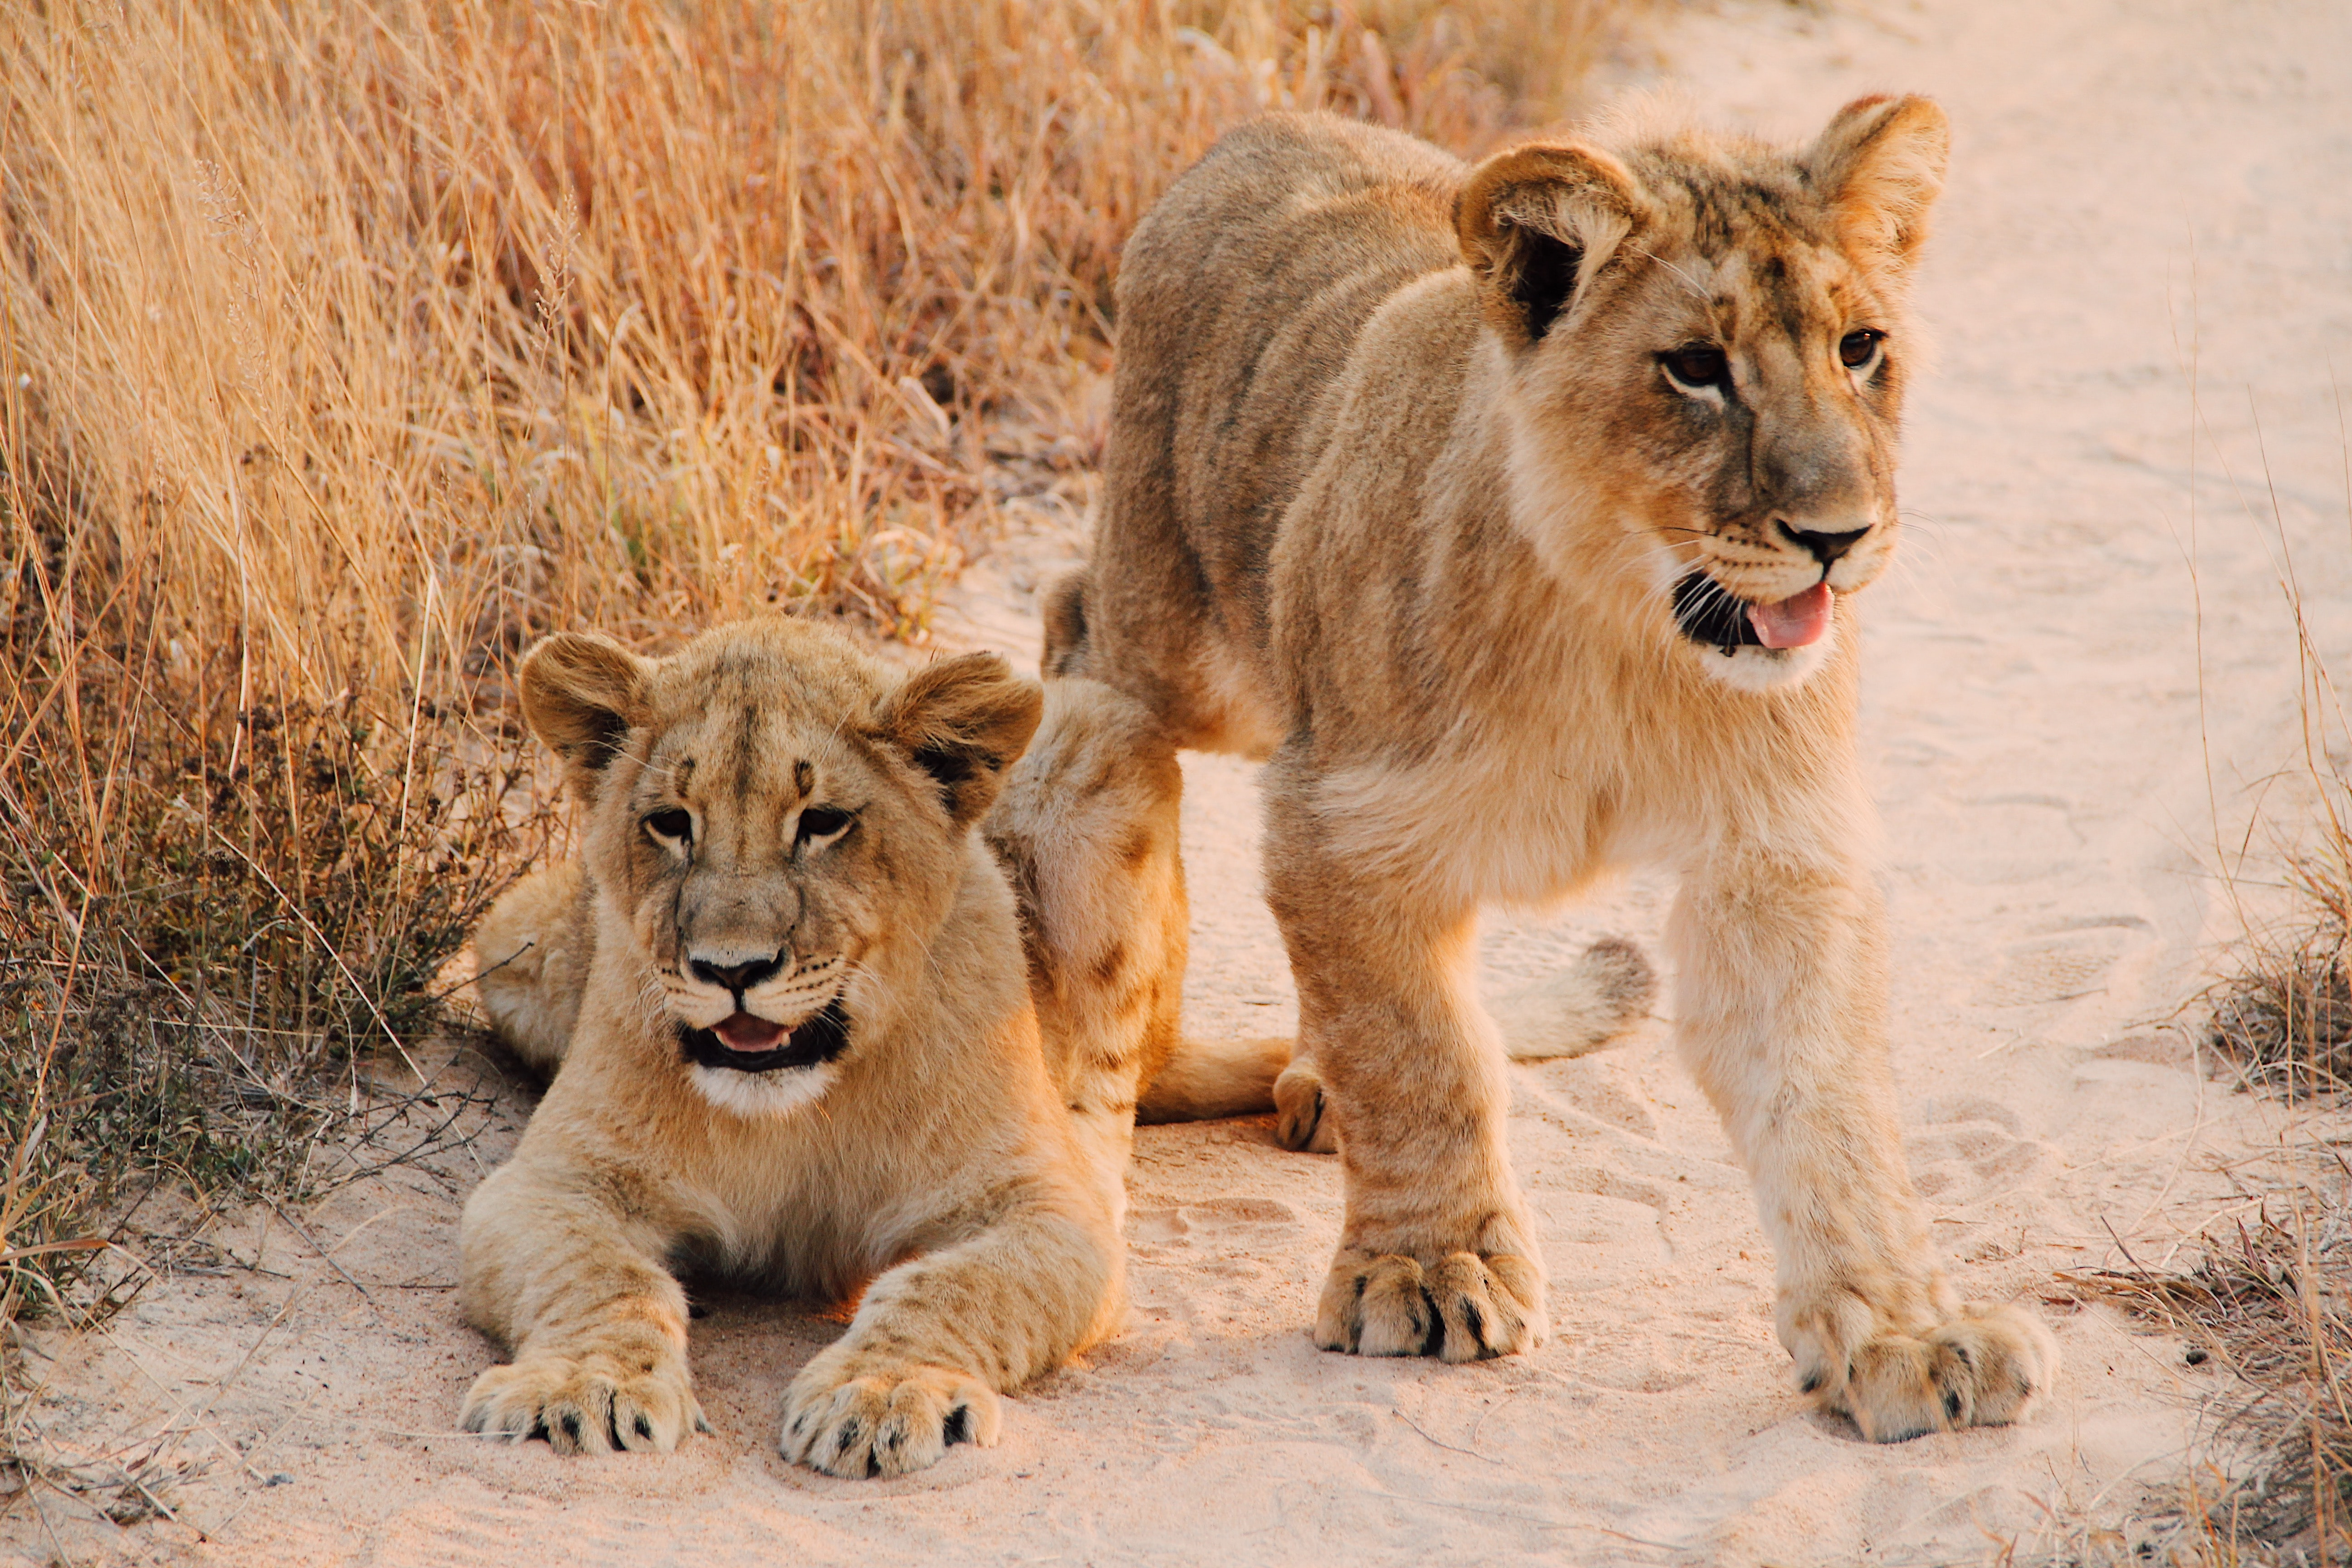 two lion cab on brown sand road between of dried grass during daytime